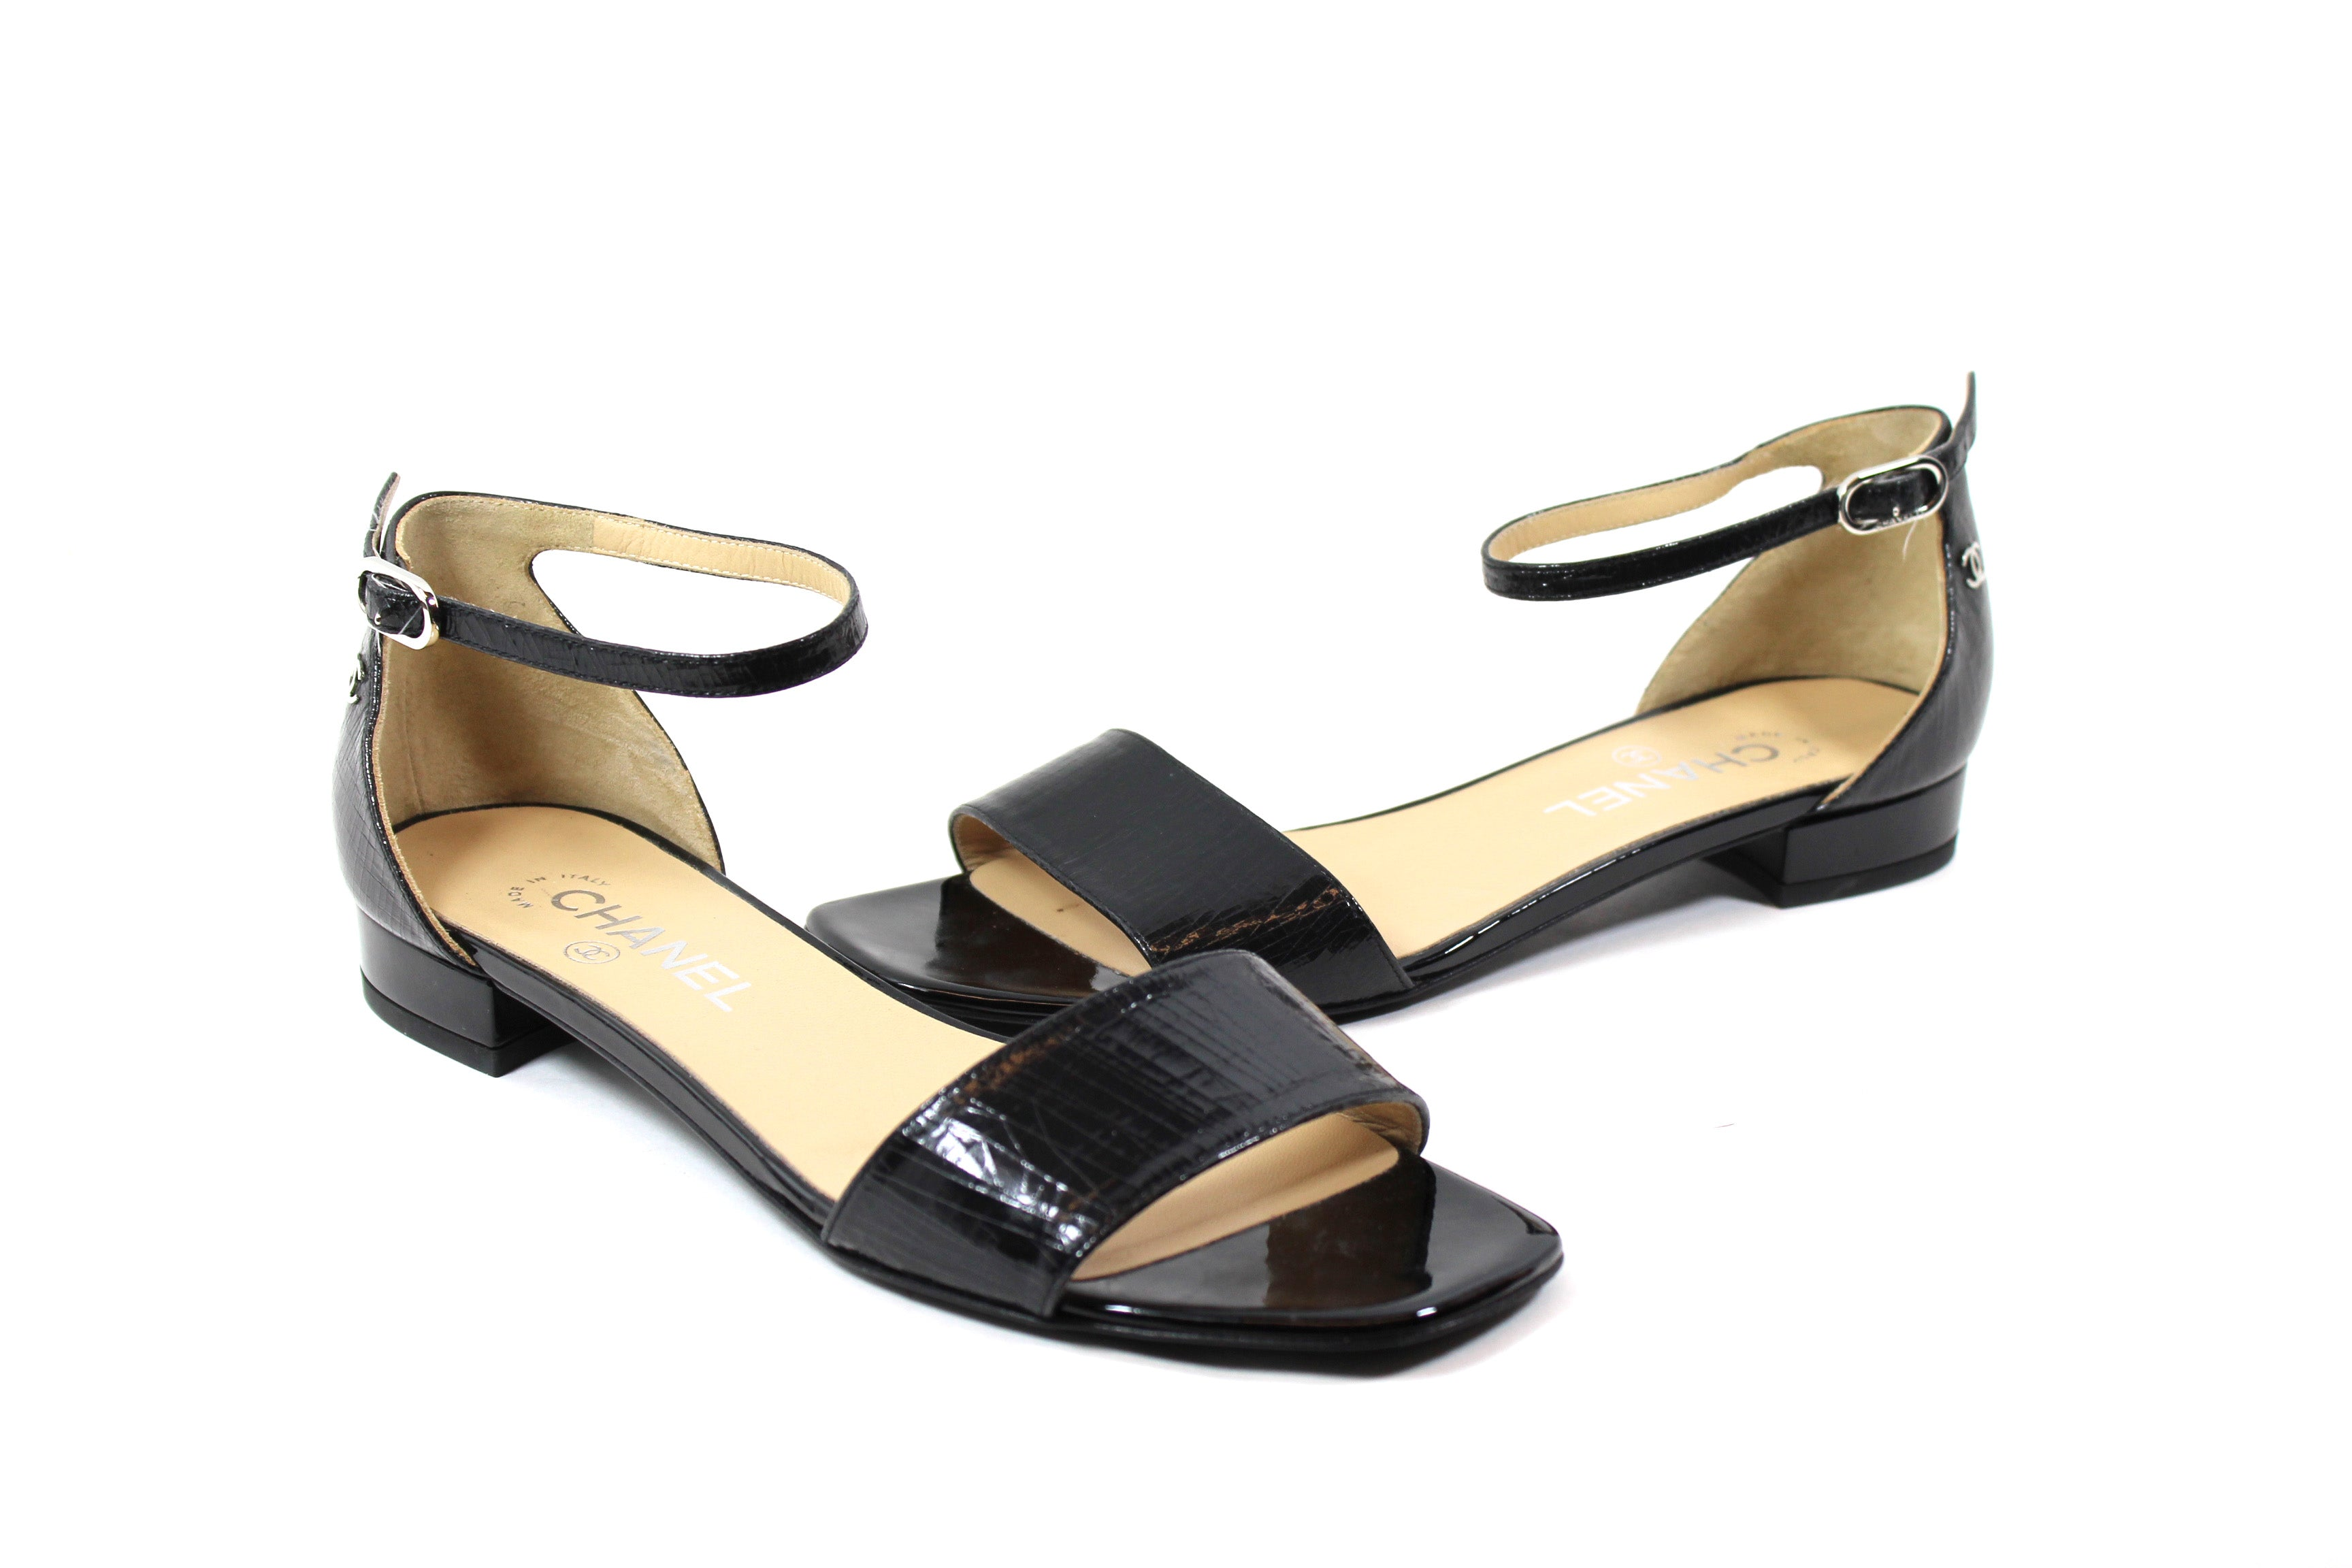 6a4e71d6d6 Sold' Chanel Black Crackled Patent Leather Sandals - G30827 (Size 38 ...